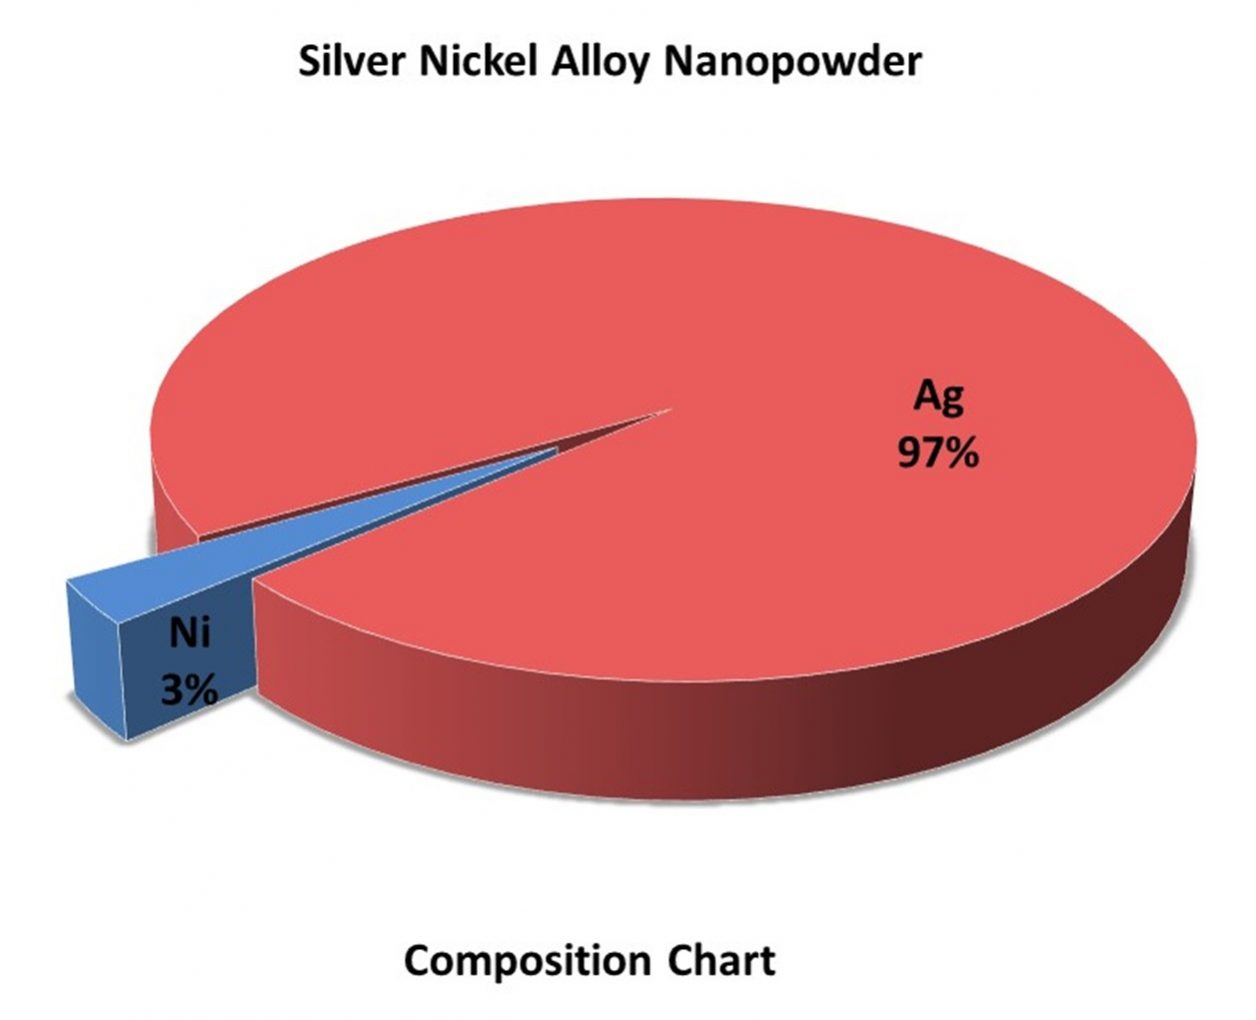 Composition Chart - Ag:Ni Alloy Nanopowder